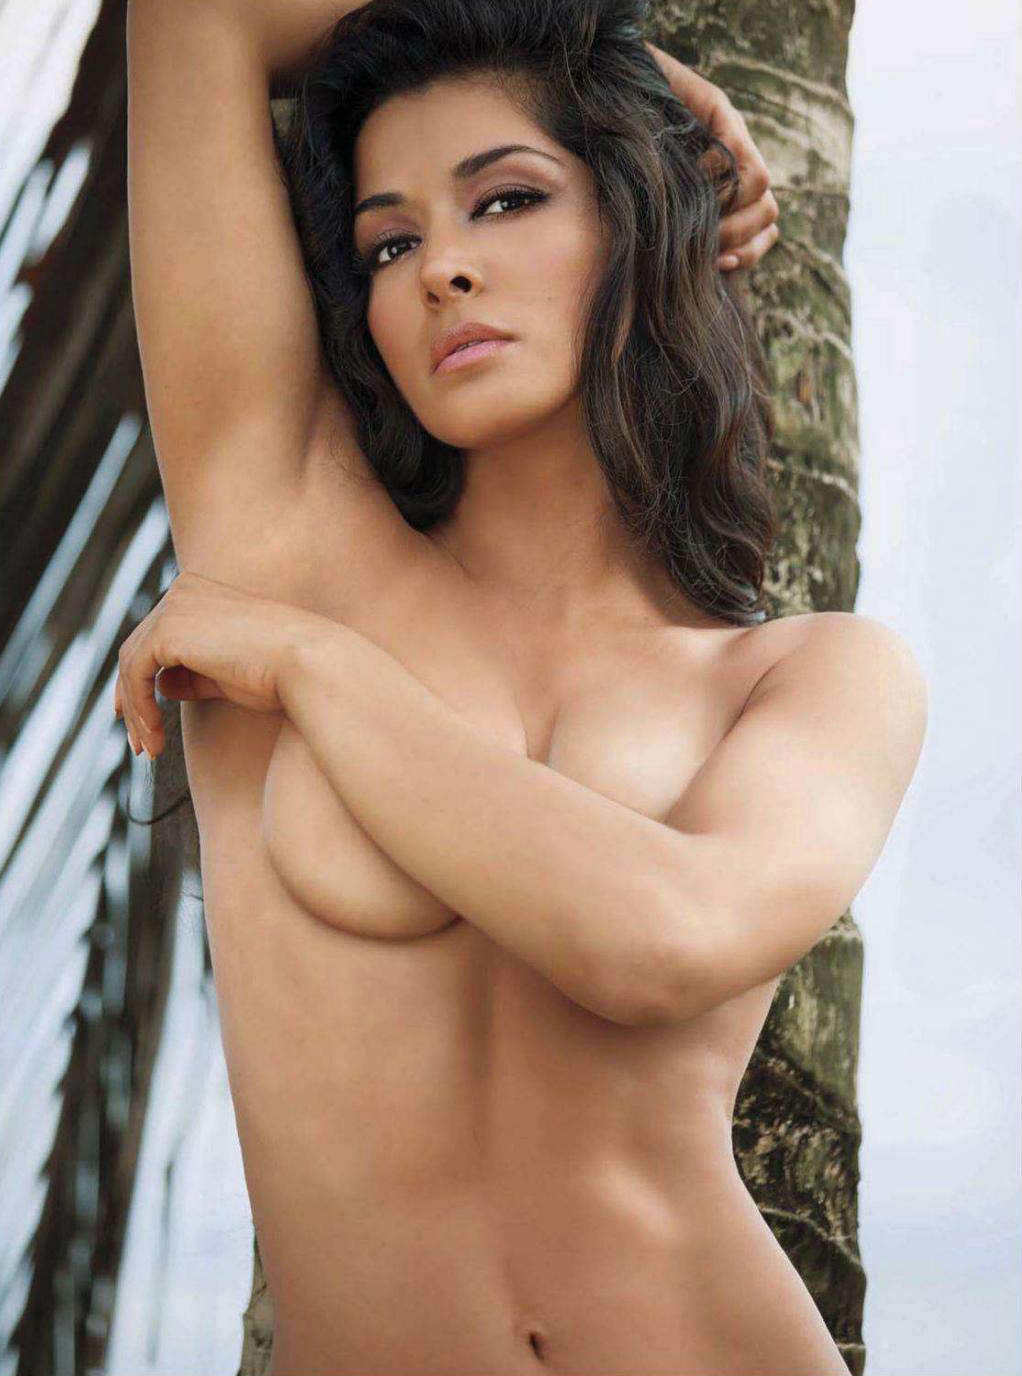 Maite perroni nude, topless pictures, playboy photos, sex scene uncensored